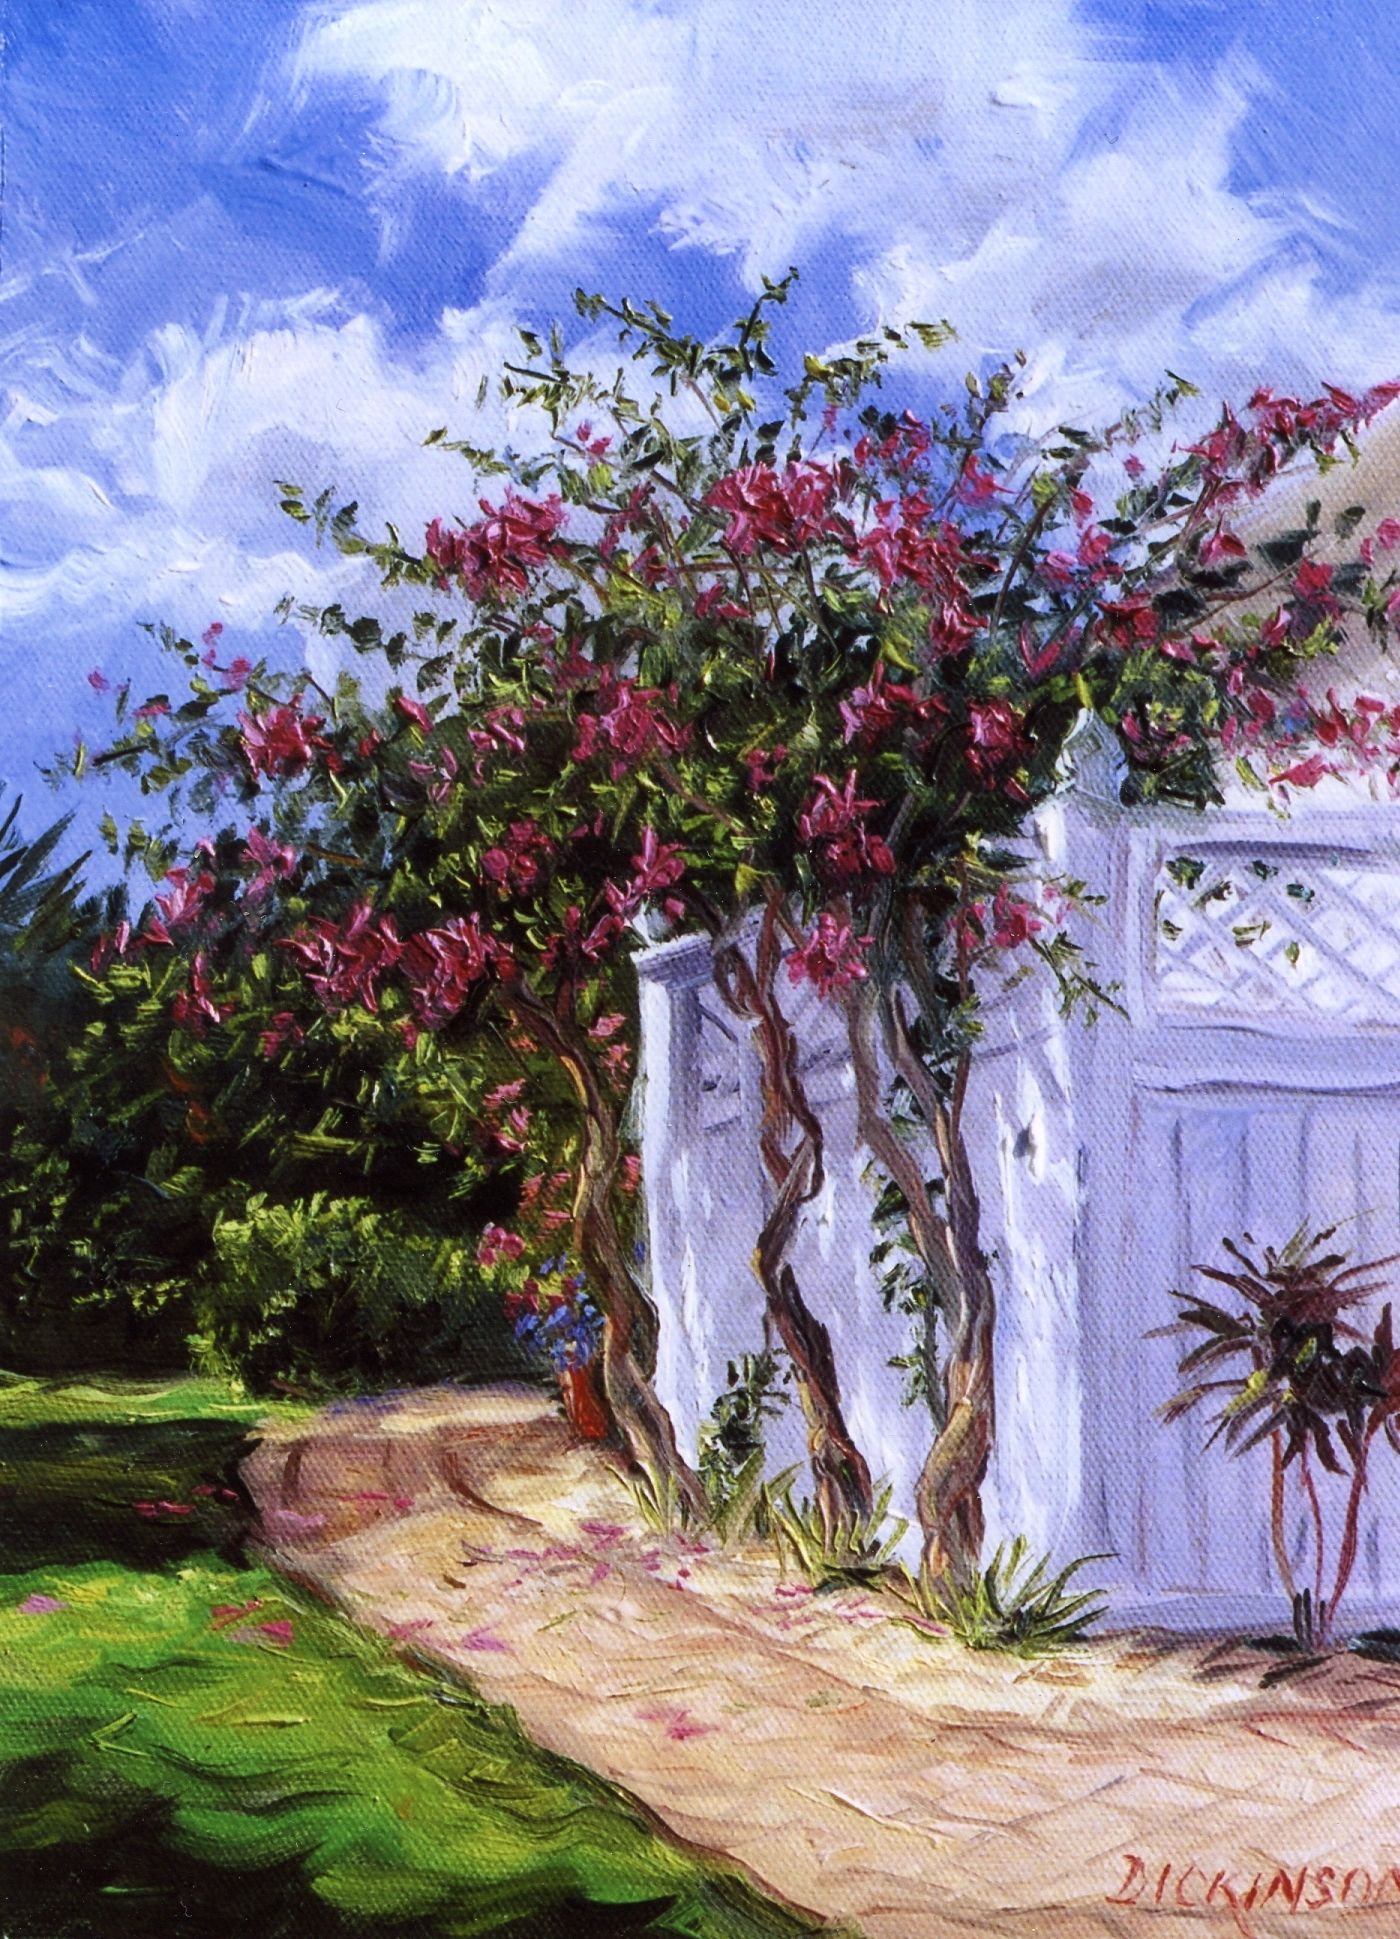 New Smyrna Beach Flowers Oil Painting By Charles Inson Potted Flower Pots